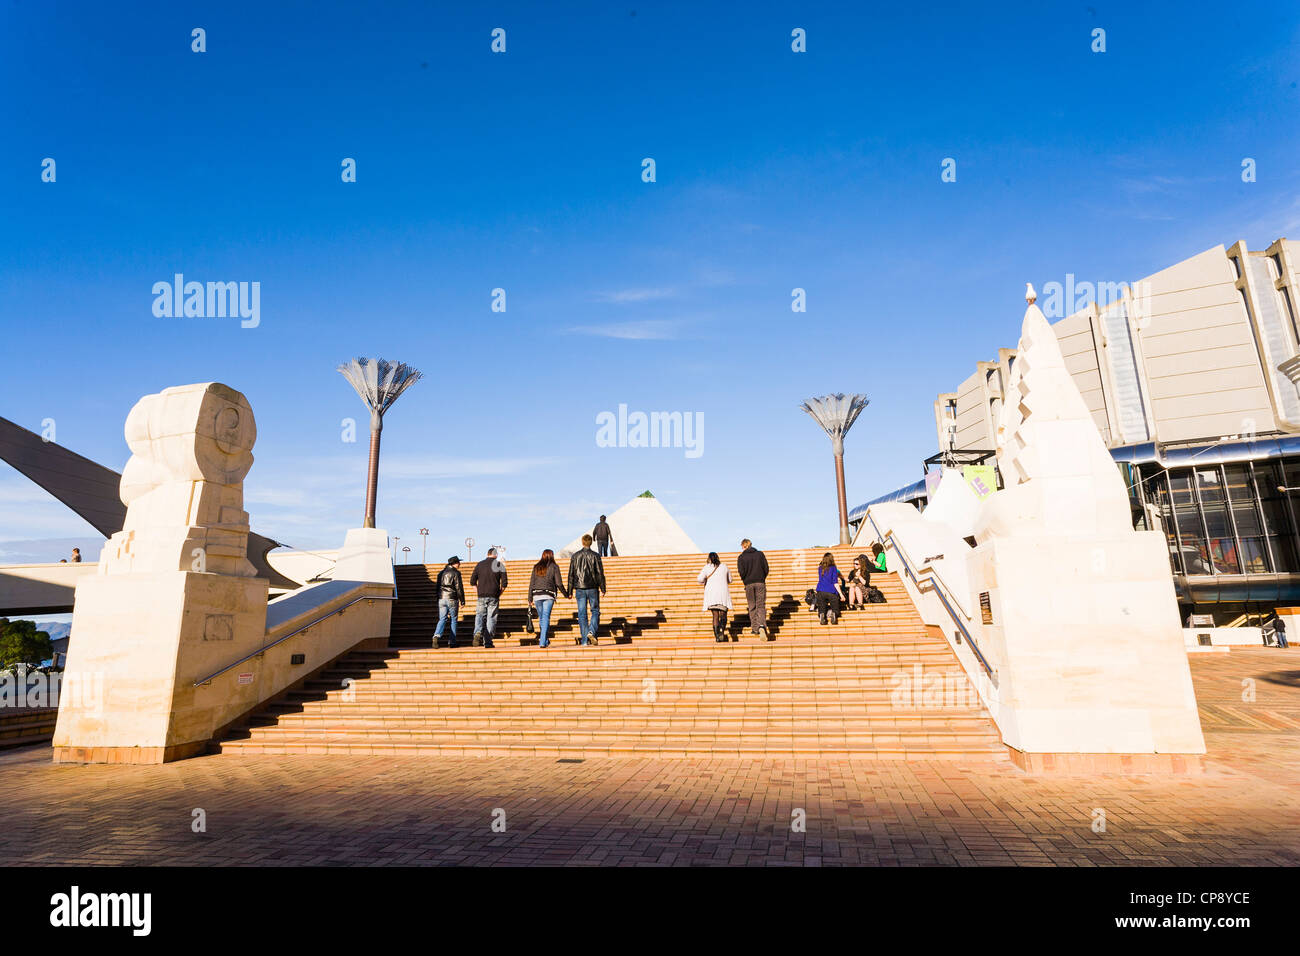 A group of people walking up the steps in Civic Square, Wellington, New Zealand. - Stock Image